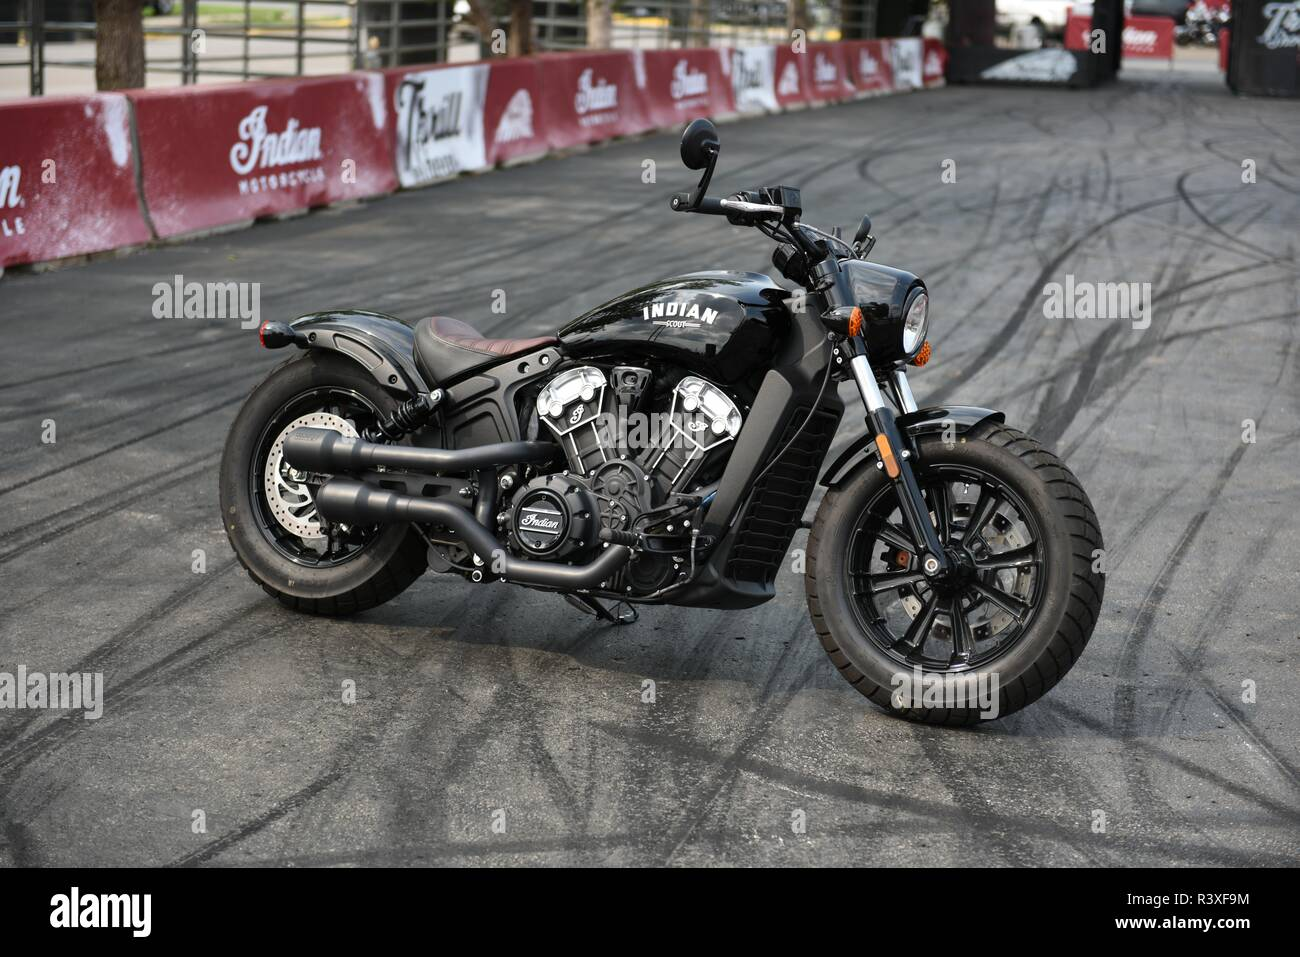 American made Indian Scout motorcycle on an exhibition track with a background of rubber tire burnout marks. - Stock Image